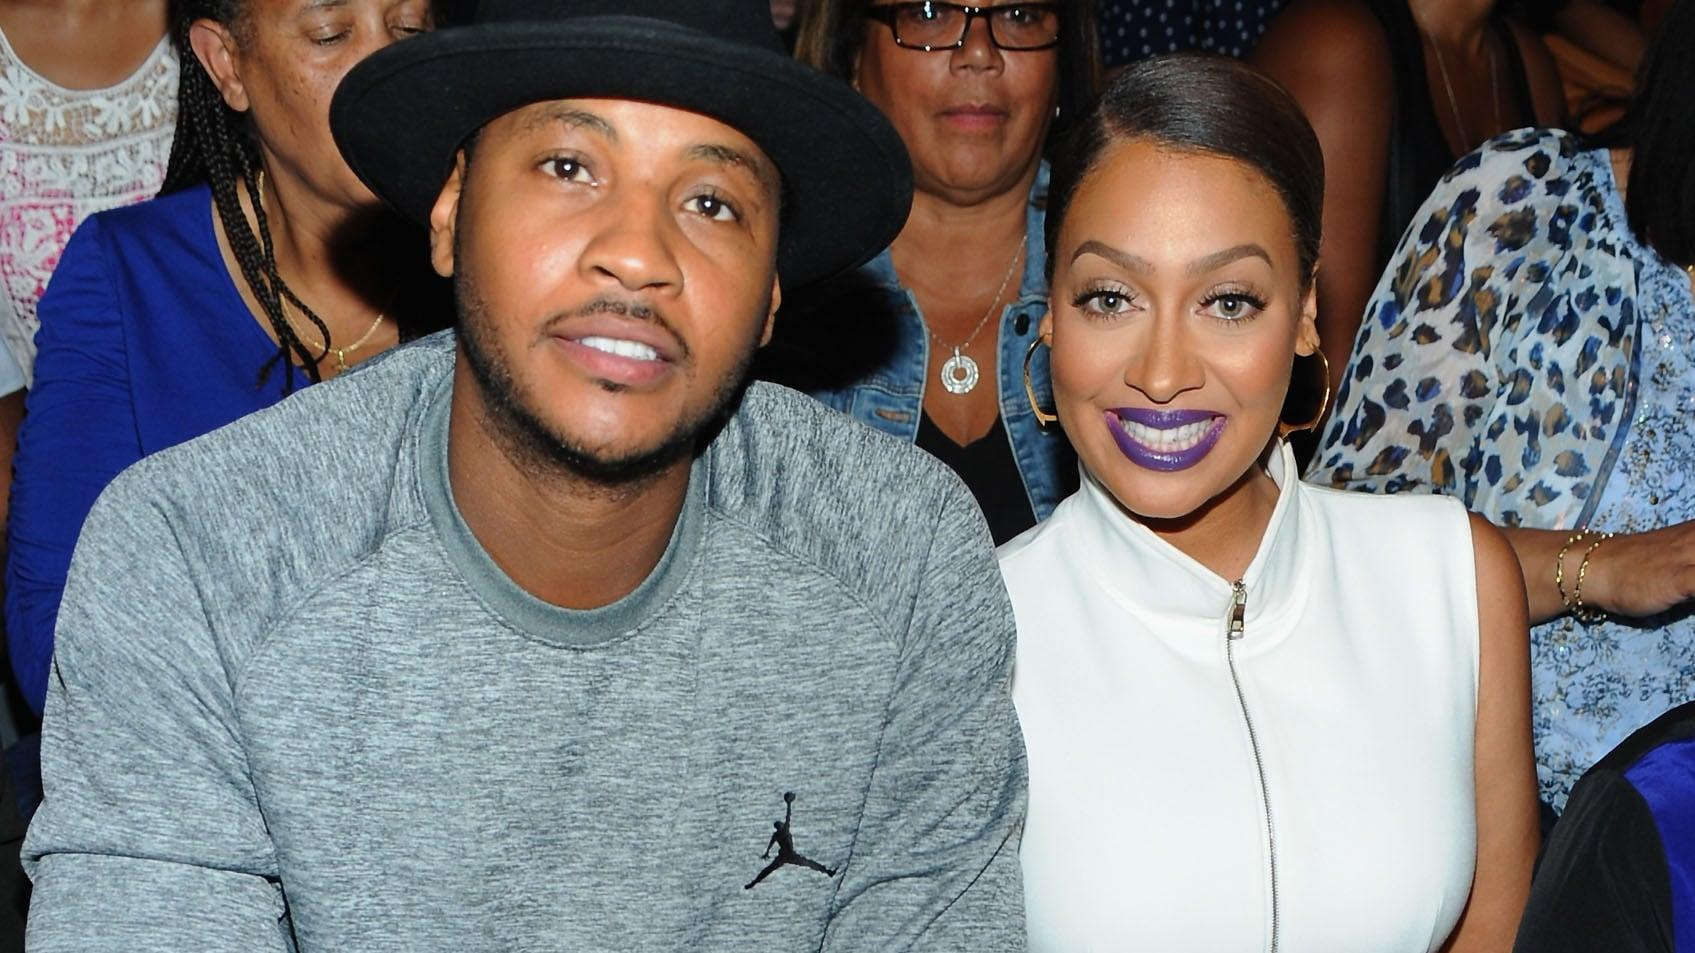 La La Anthony Expecting Second Child With Carmelo? - Here's Why Fans Are Convinced She Accidentally Spilled The Beans!